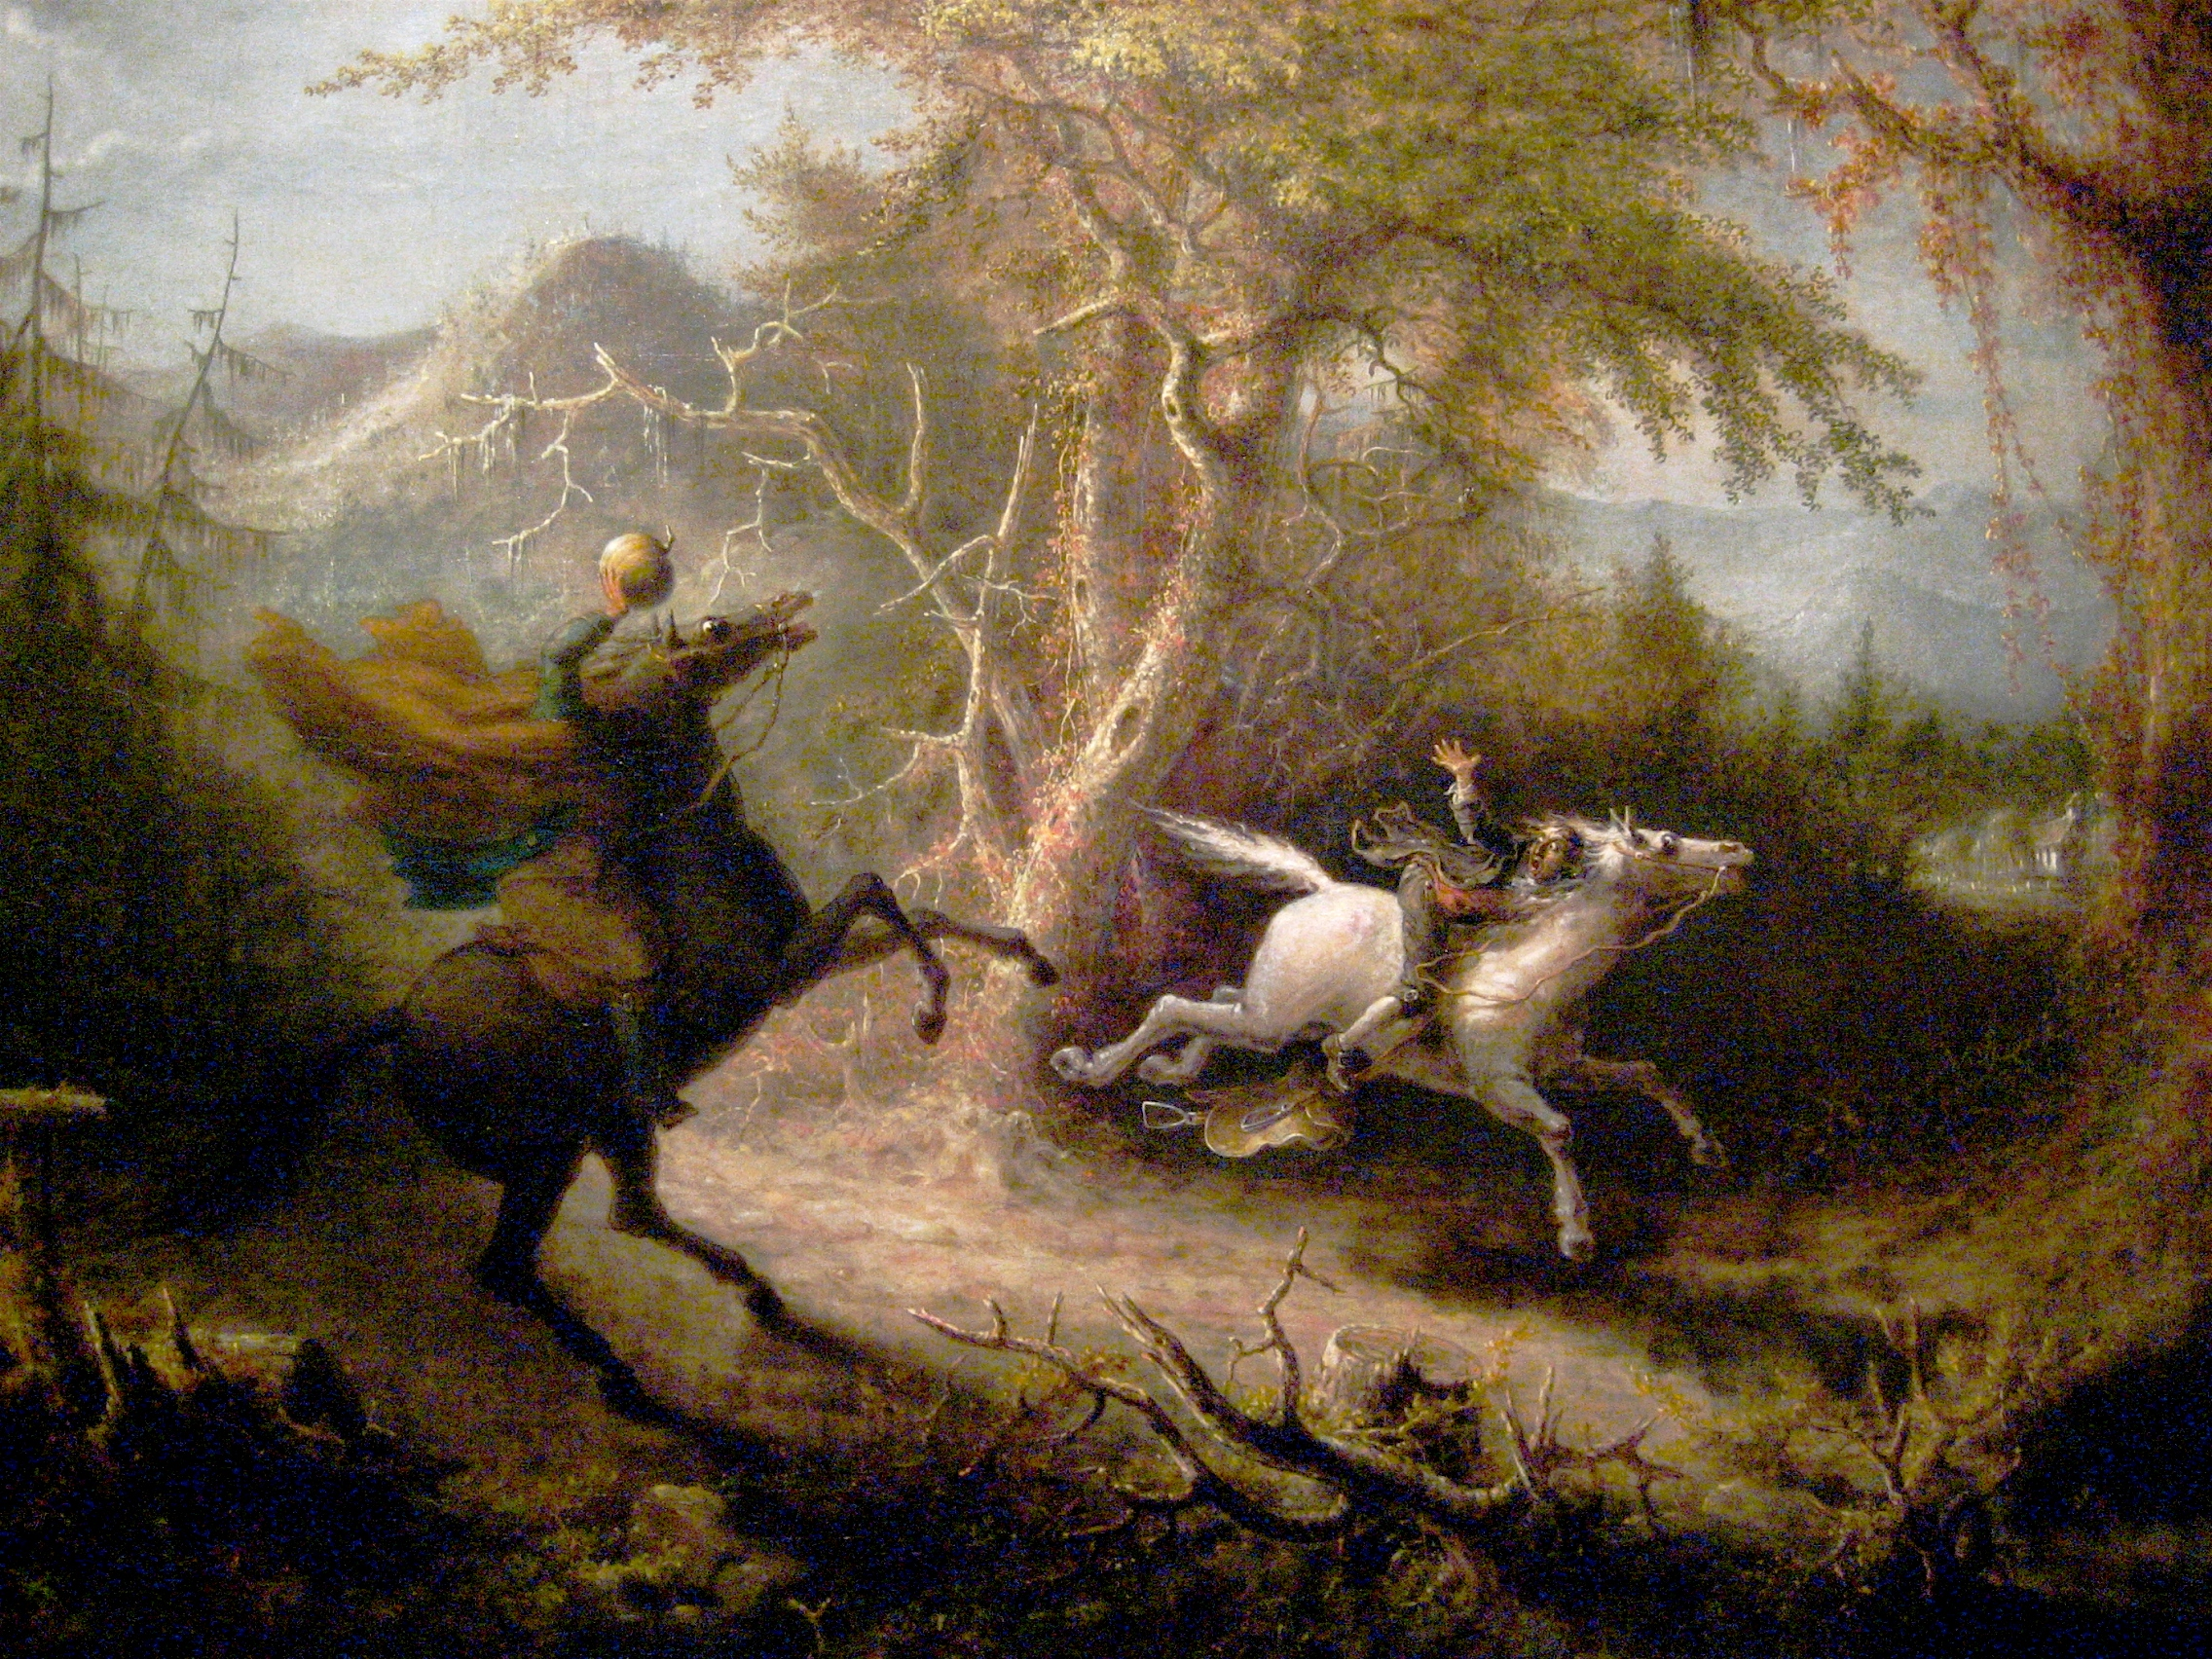 http://upload.wikimedia.org/wikipedia/commons/4/4c/The_Headless_Horseman_Pursuing_Ichabod_Crane.jpg